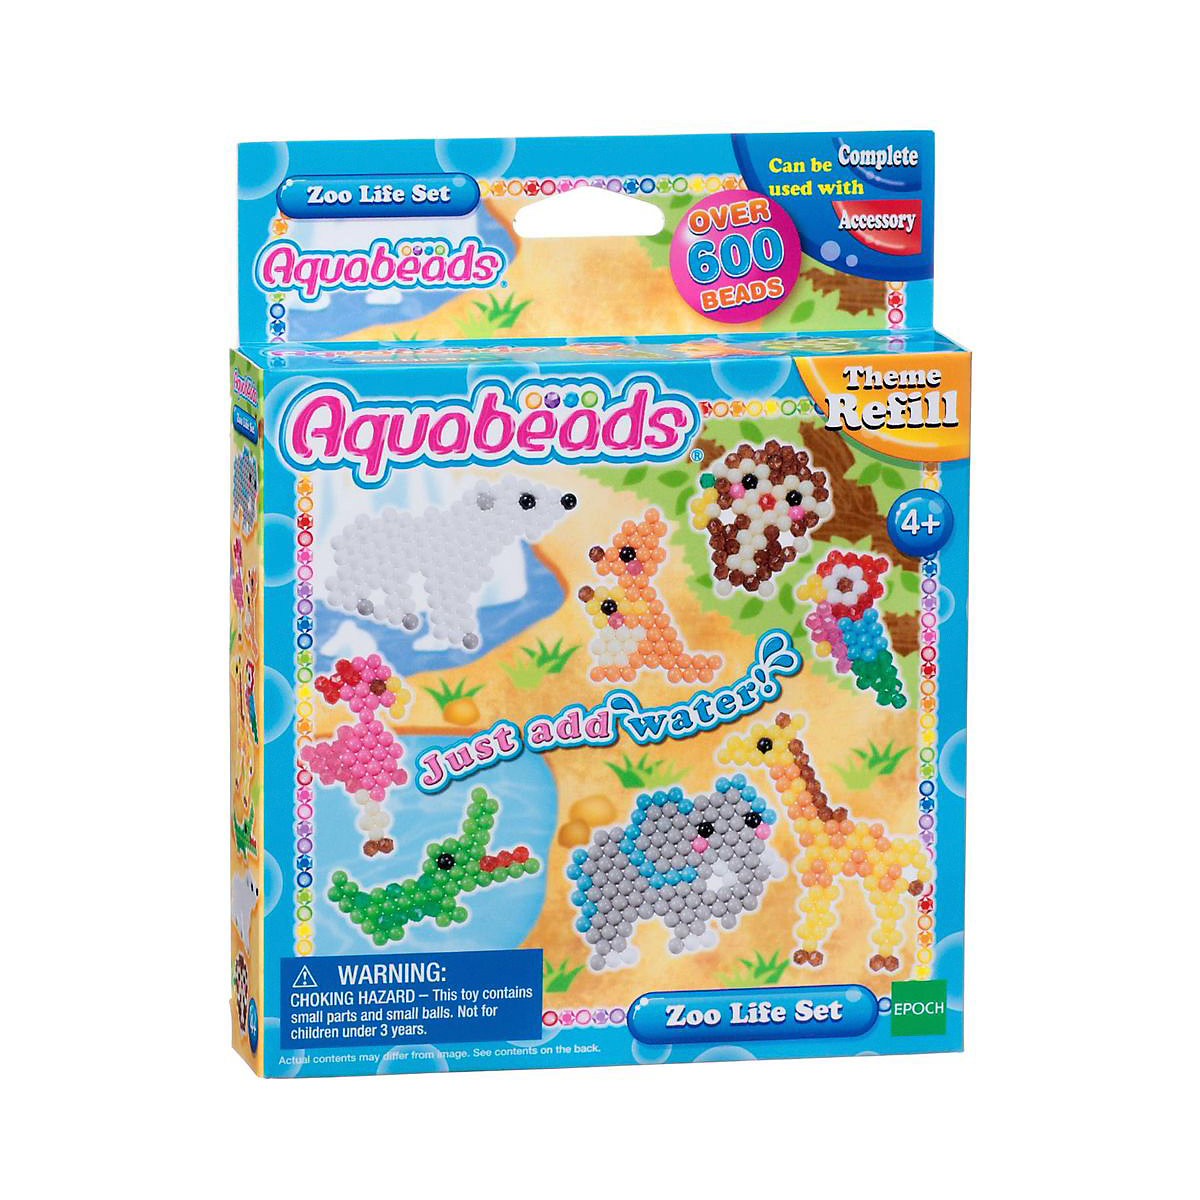 Aquabeads Beads Toys 10134712 Creativity Needlework For Children Set Kids Toy Hobbis Arts Crafts DIY